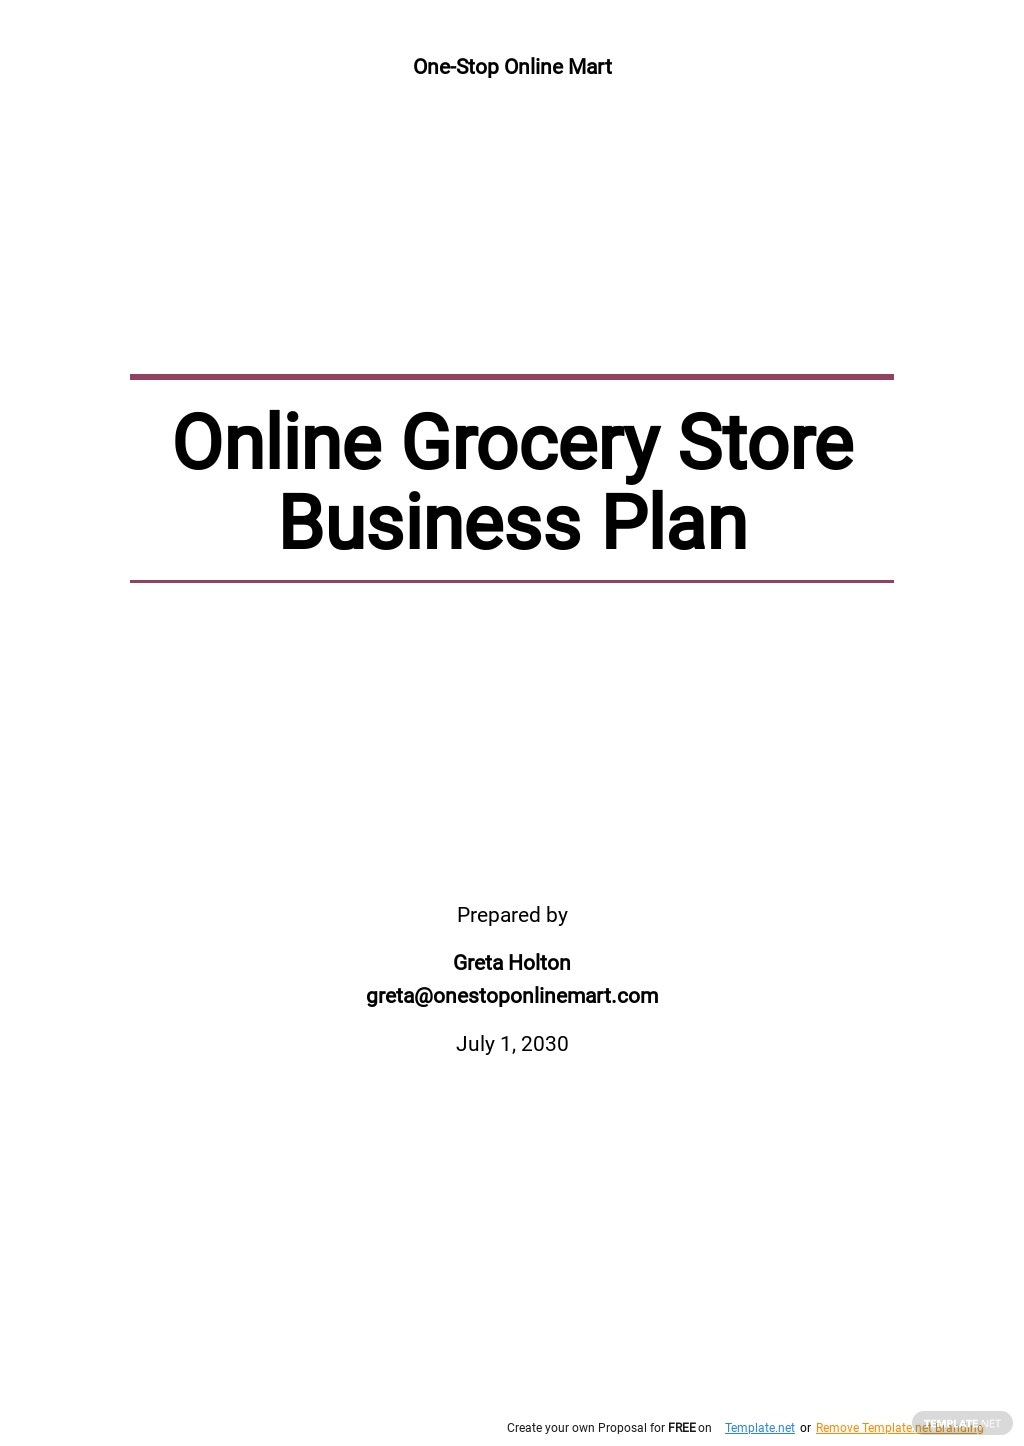 Online Grocery Store Business Plan Template.jpe